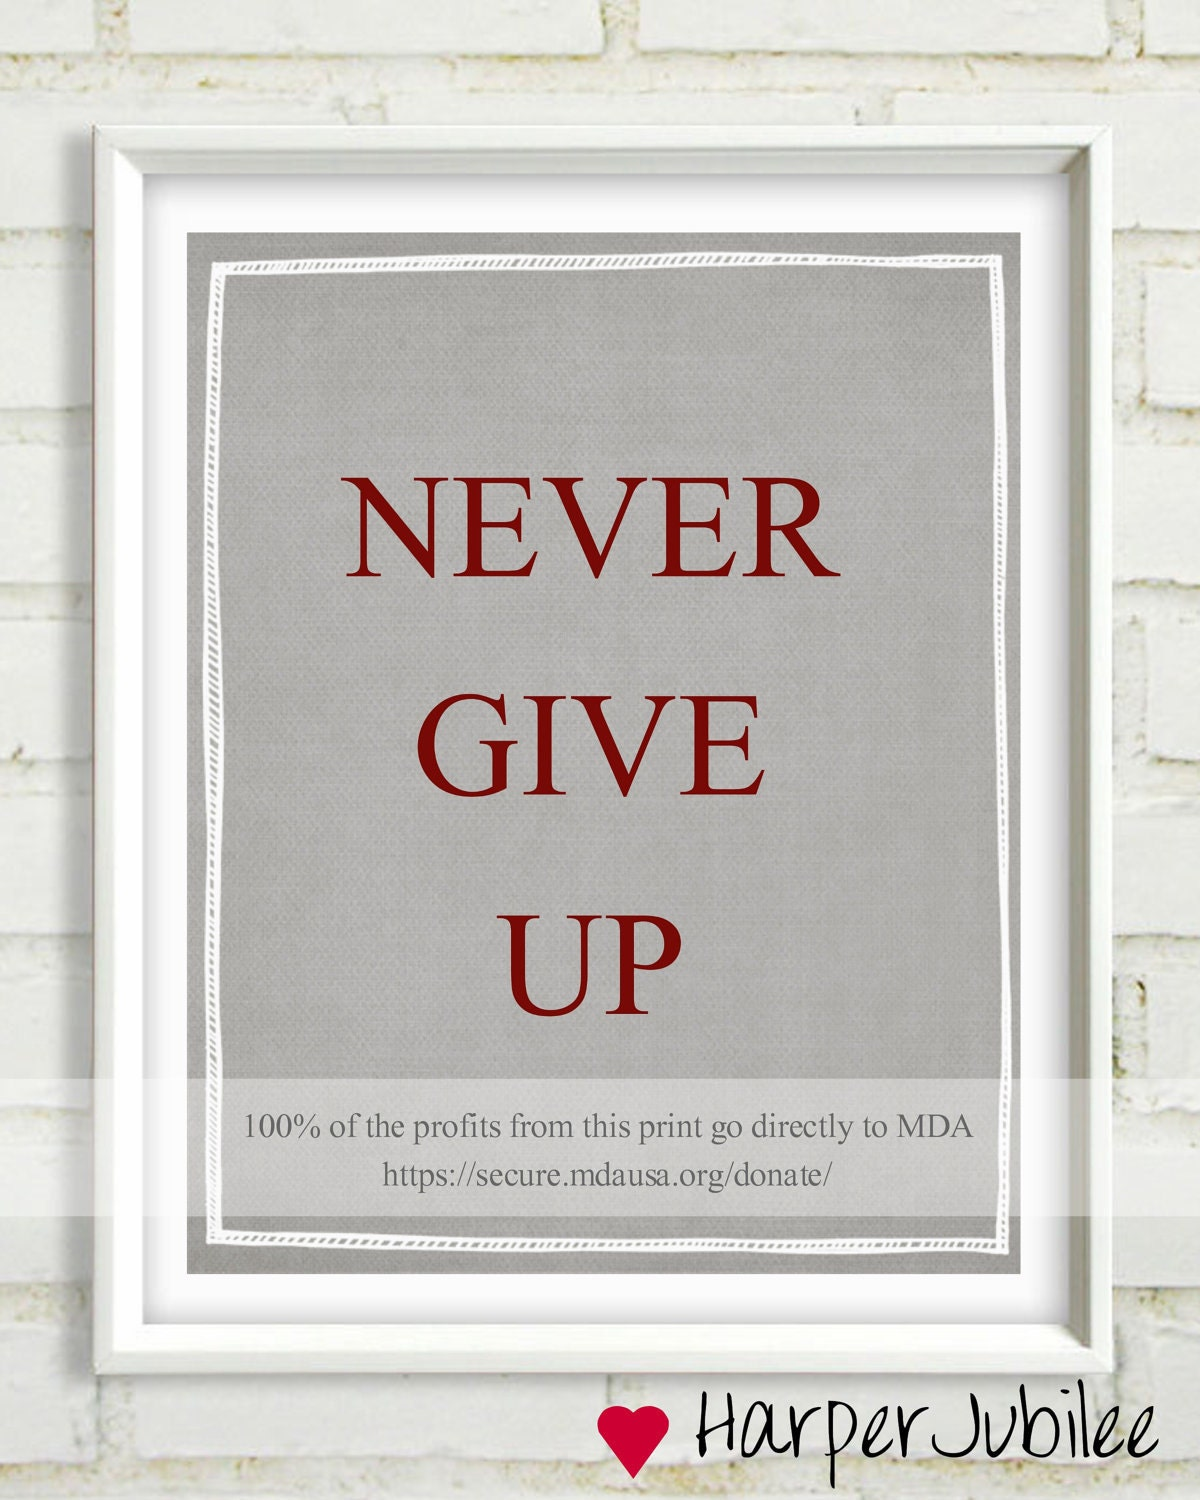 Never Give Up Muscular Dystrophy Charitable Donation Art Print  Duchenne 8x10 printable pick your colors